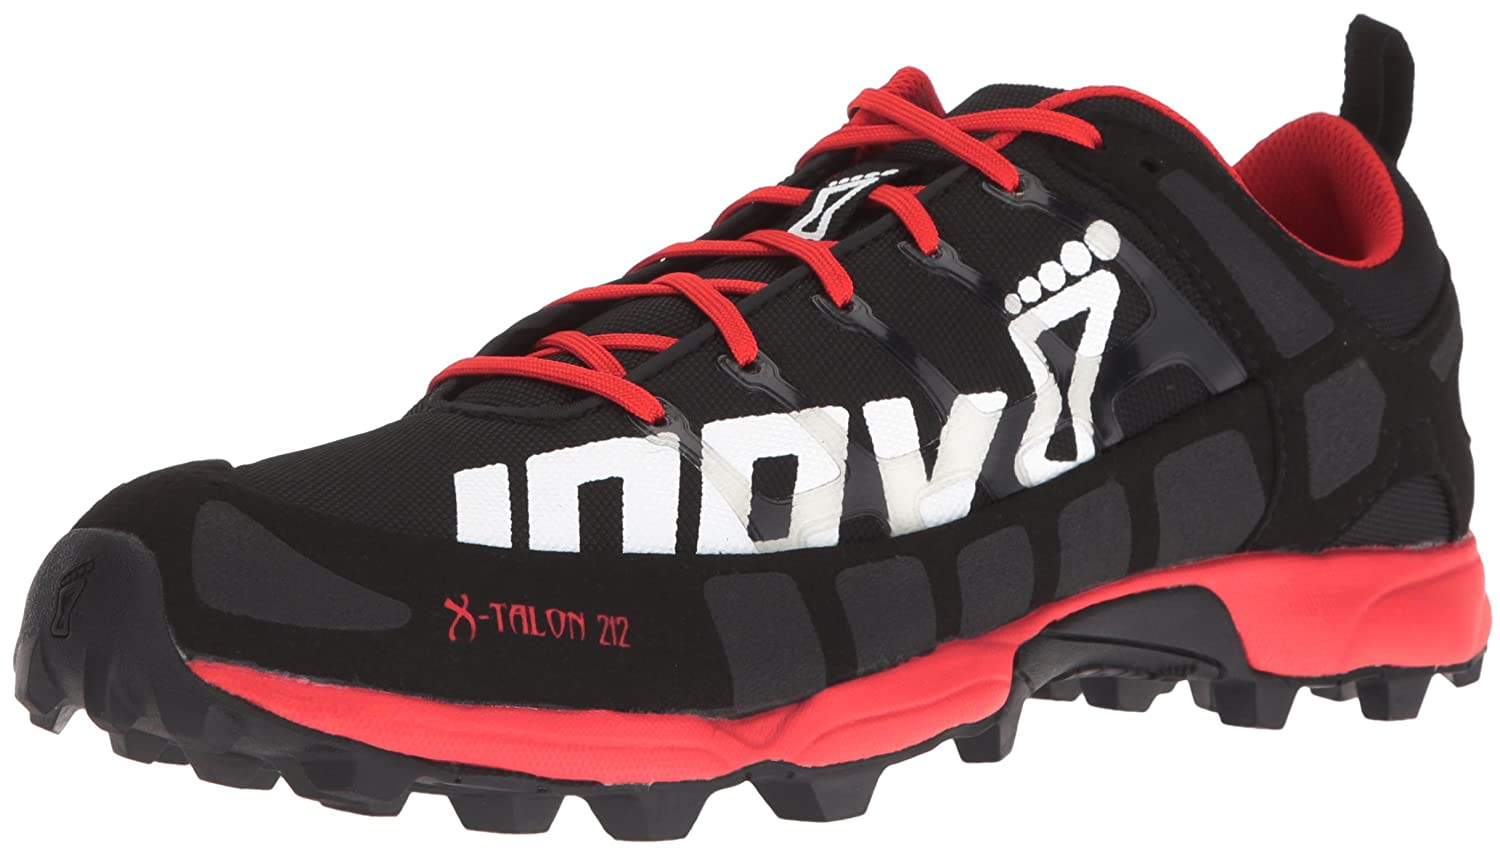 Inov-8 Men's X-Talon 212 (S) Trail-Running Shoe B01G7ZMTWS 11 M/12.5 W|Black/Red